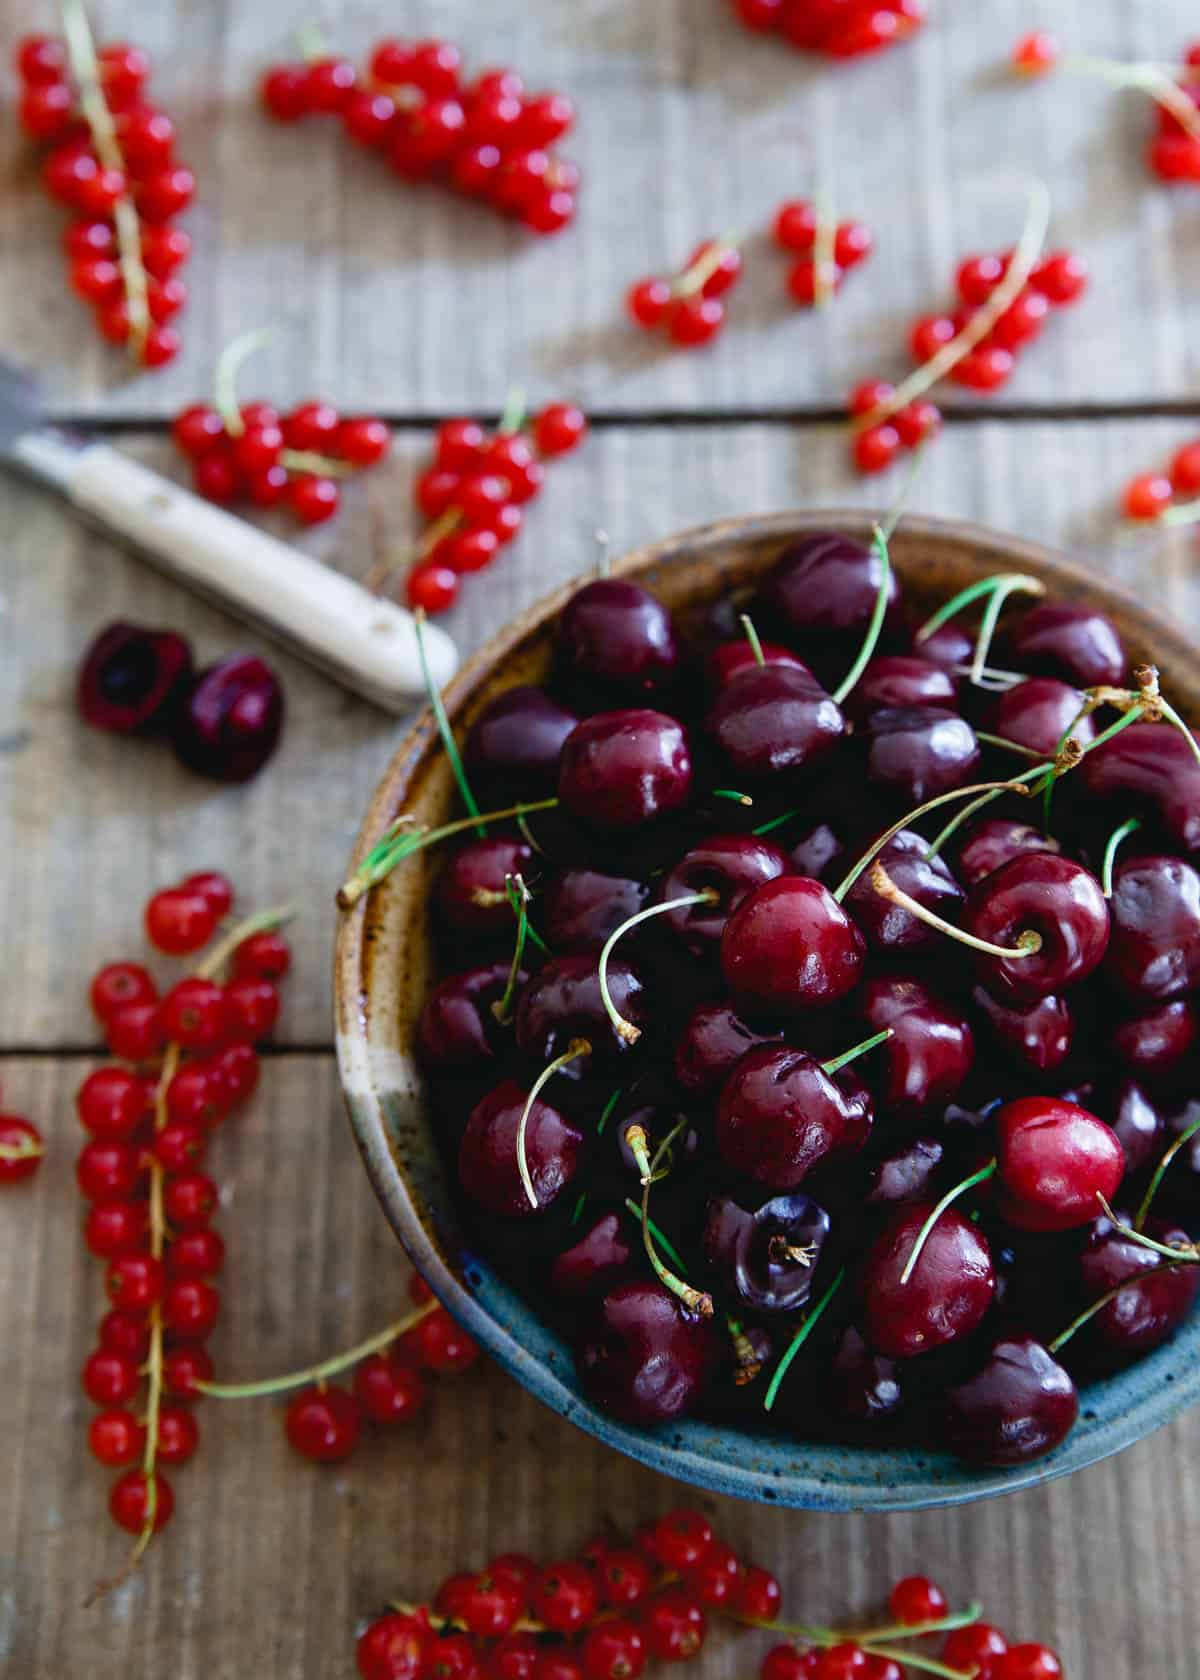 Cherries and Currants make this Baby Kale Chicken Cherry Salad a healthy, light summer meal.